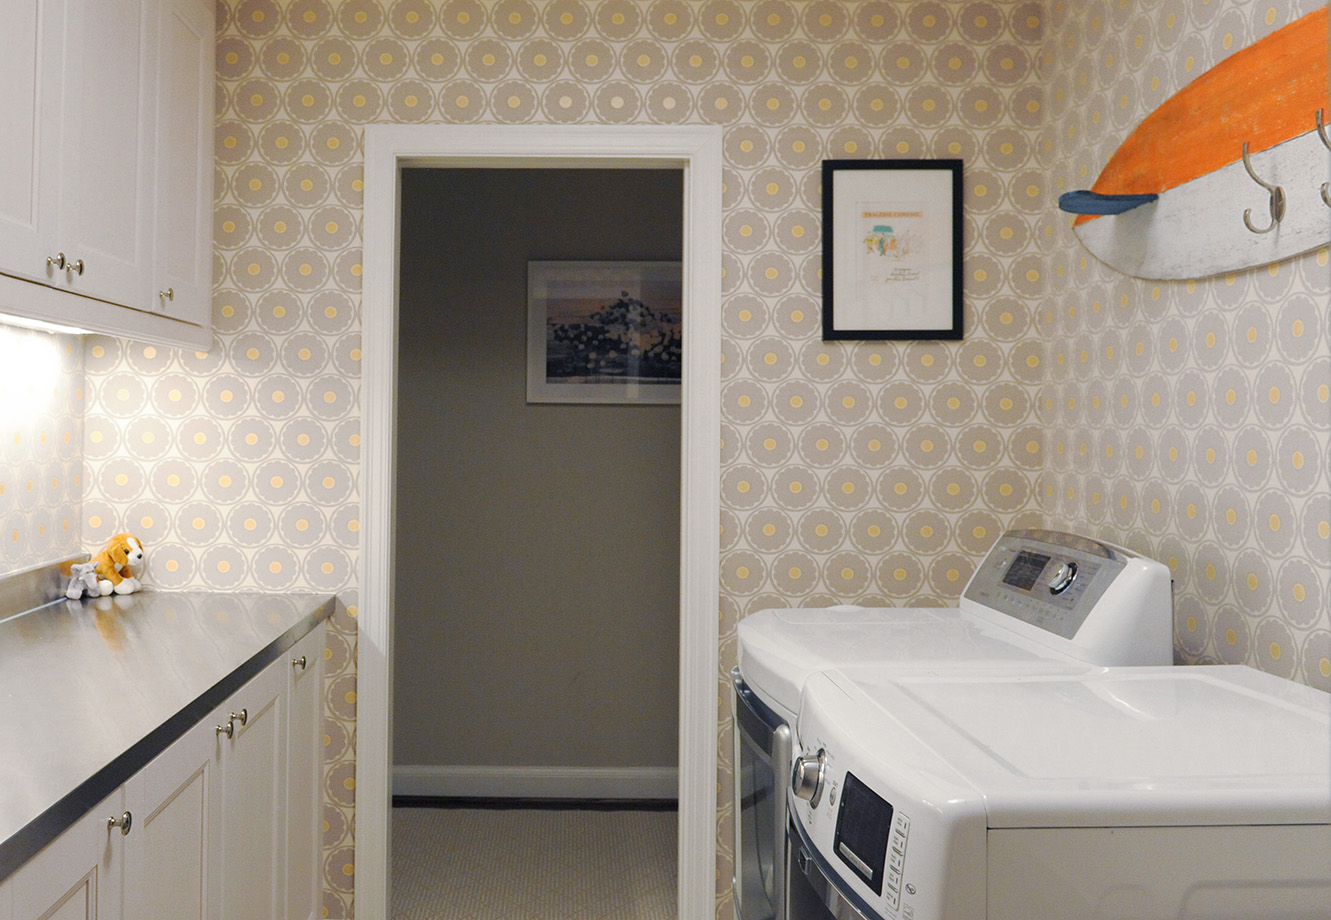 Surf's up in this easy access laundry room